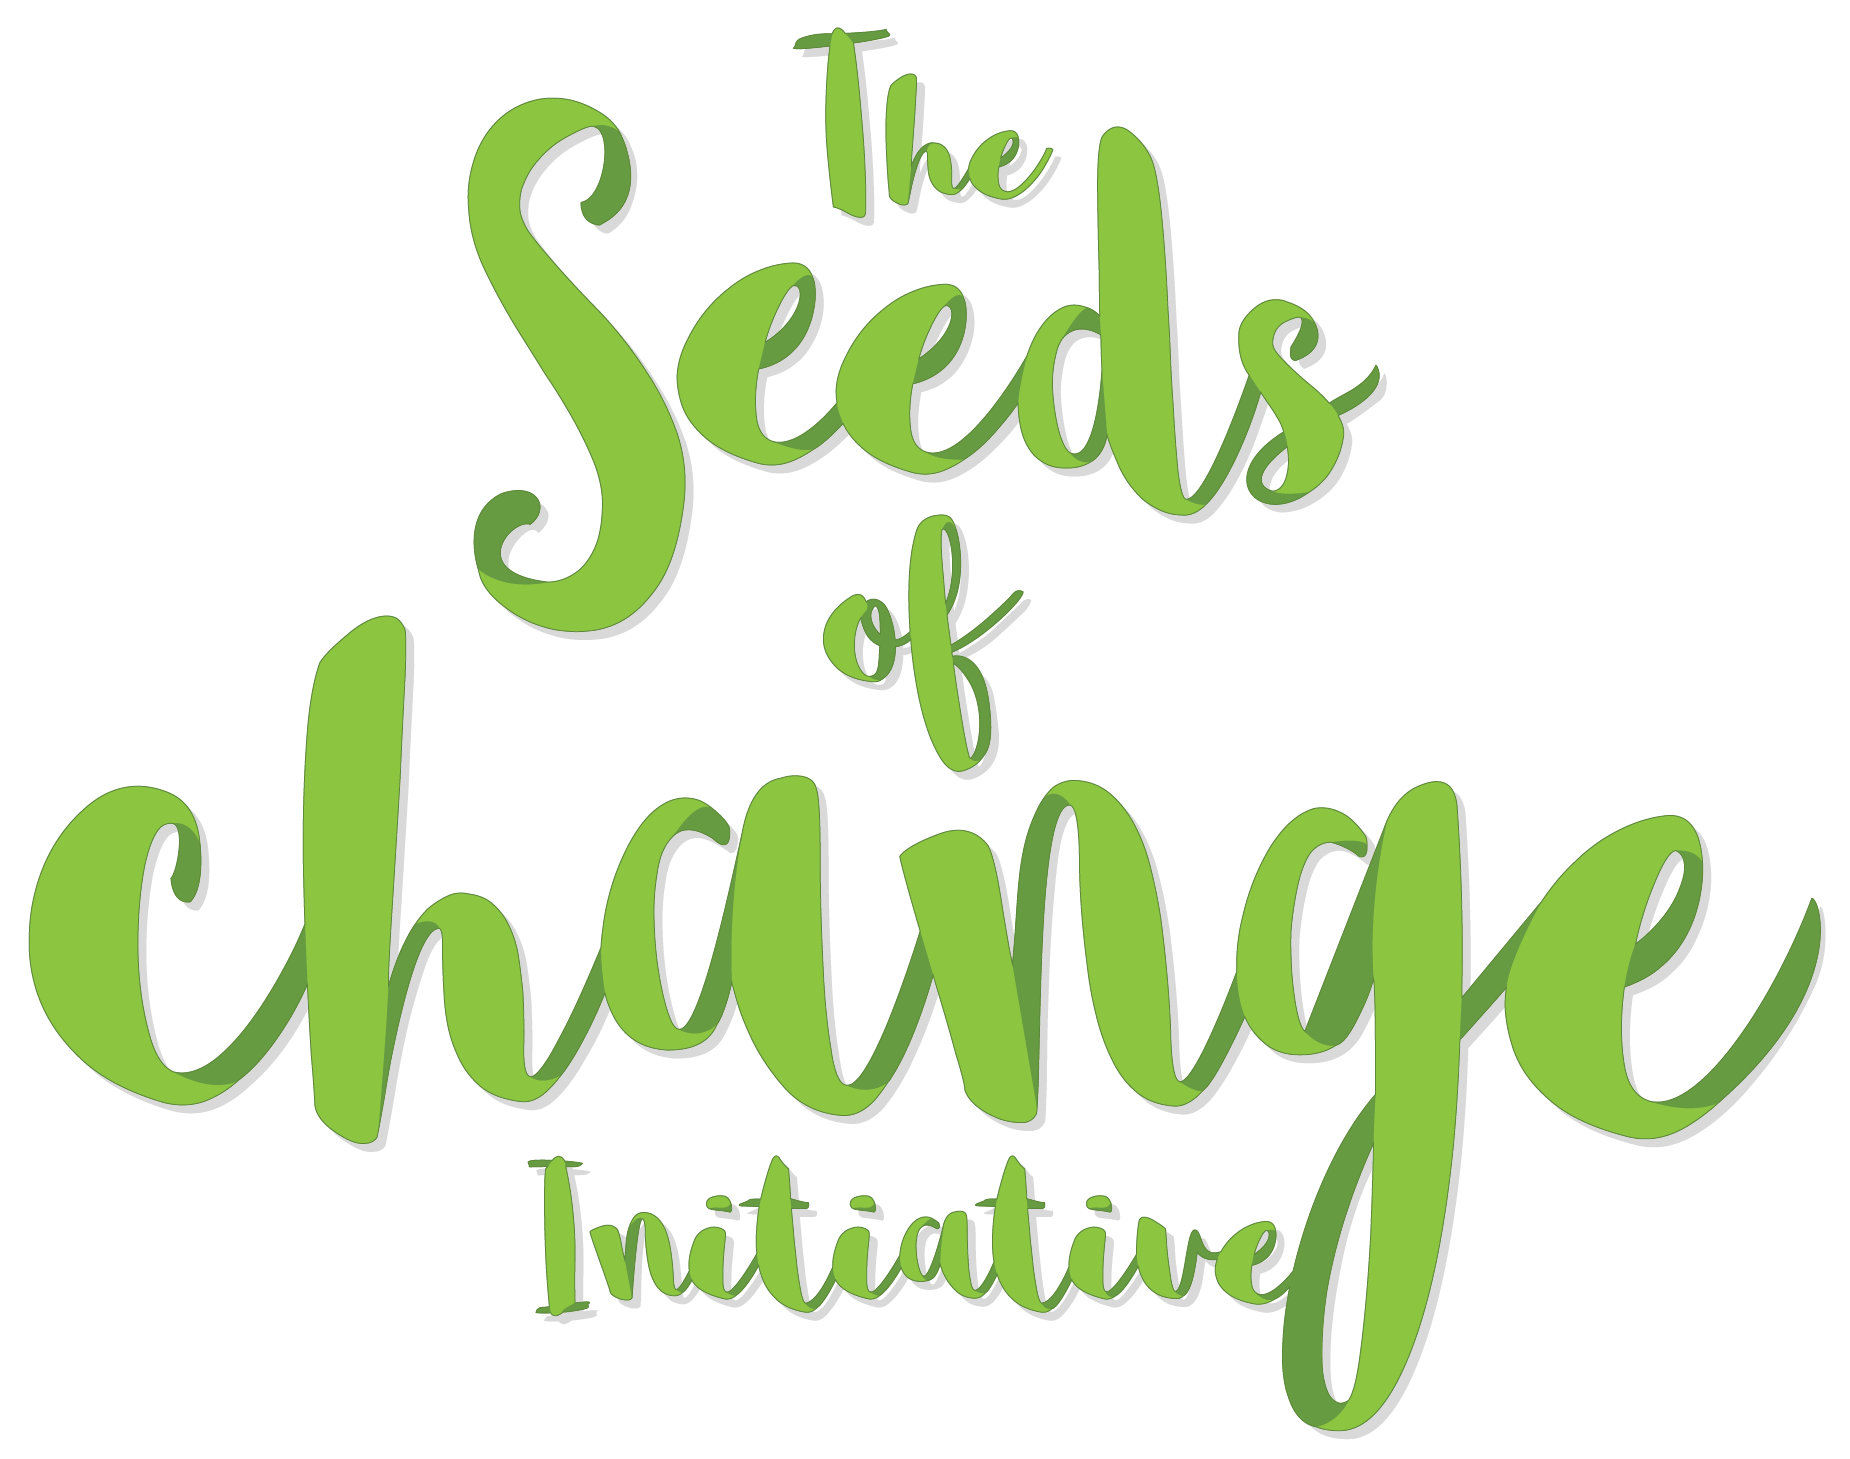 The Seeds of Change Initiative Logo